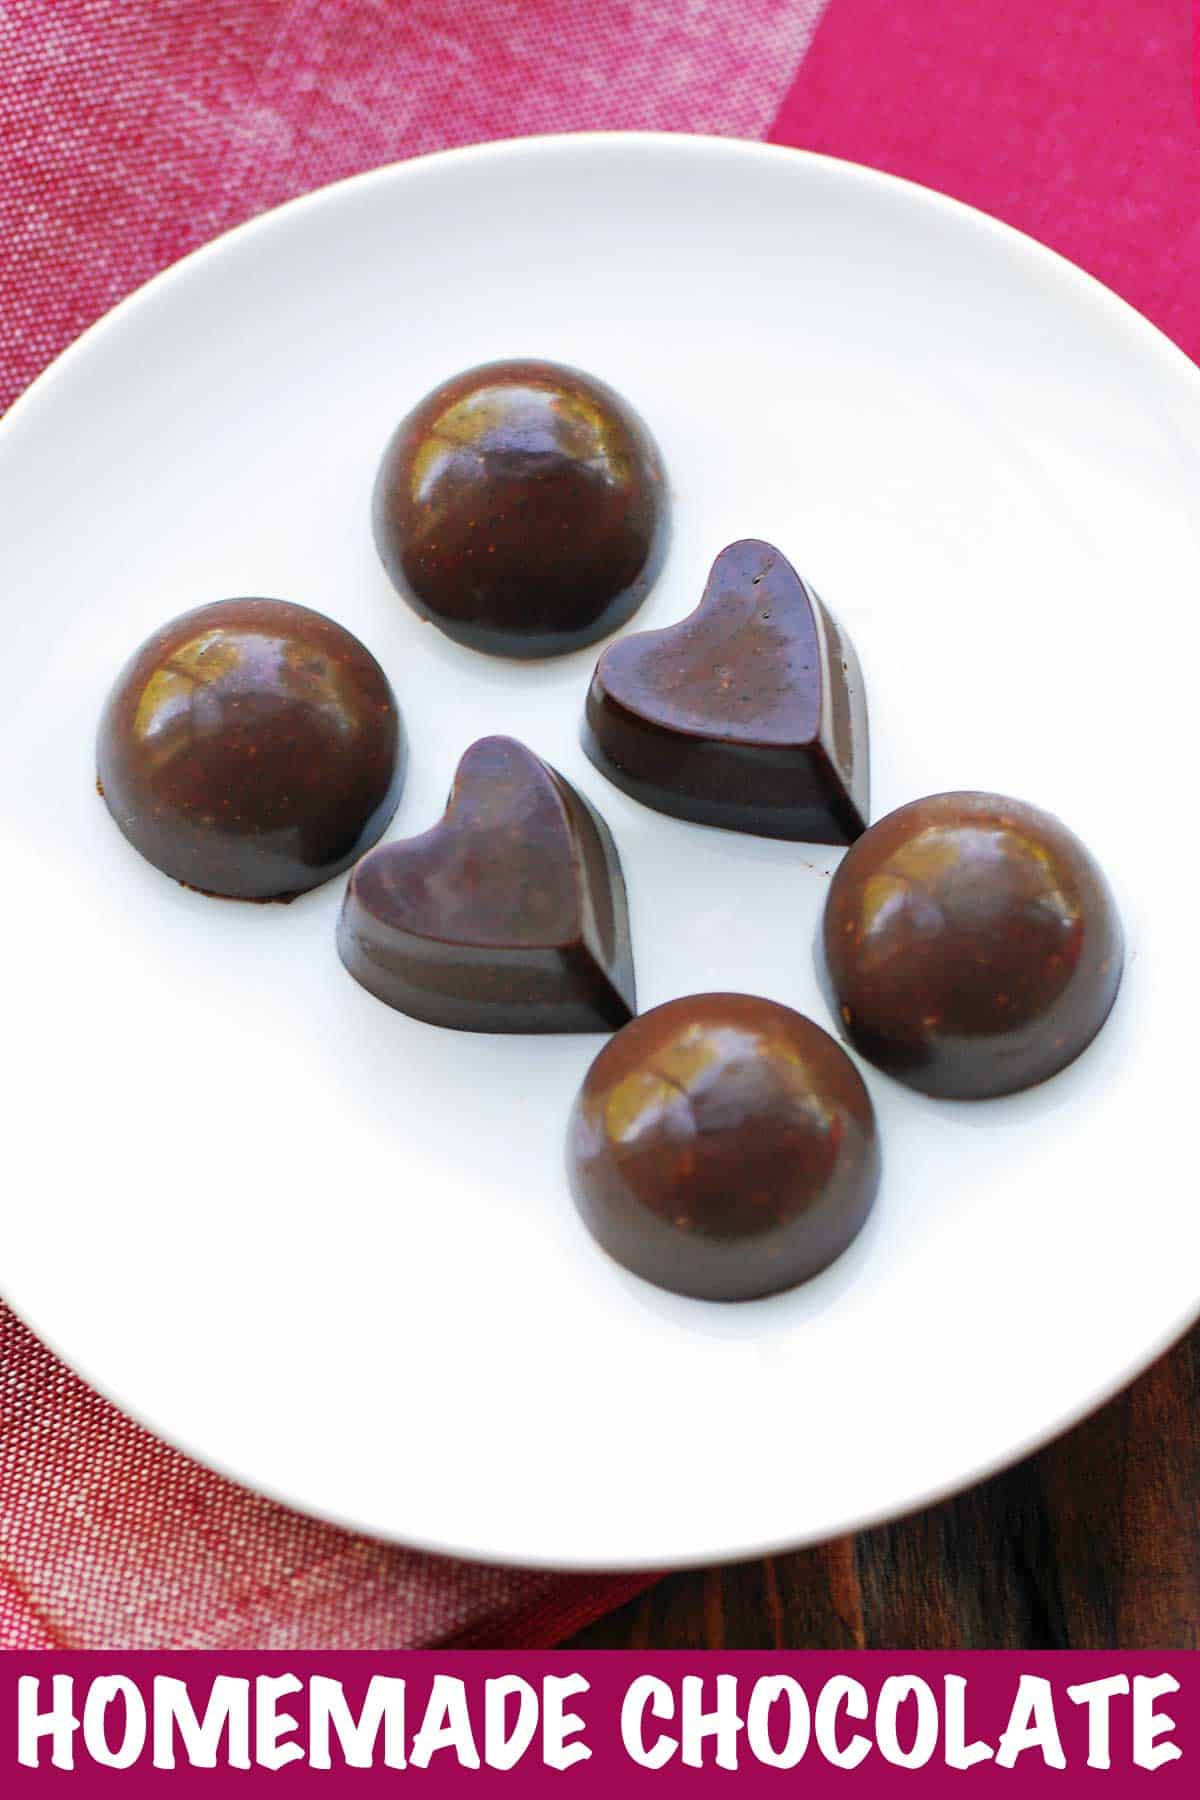 Homemade chocolate bonbons on a plate